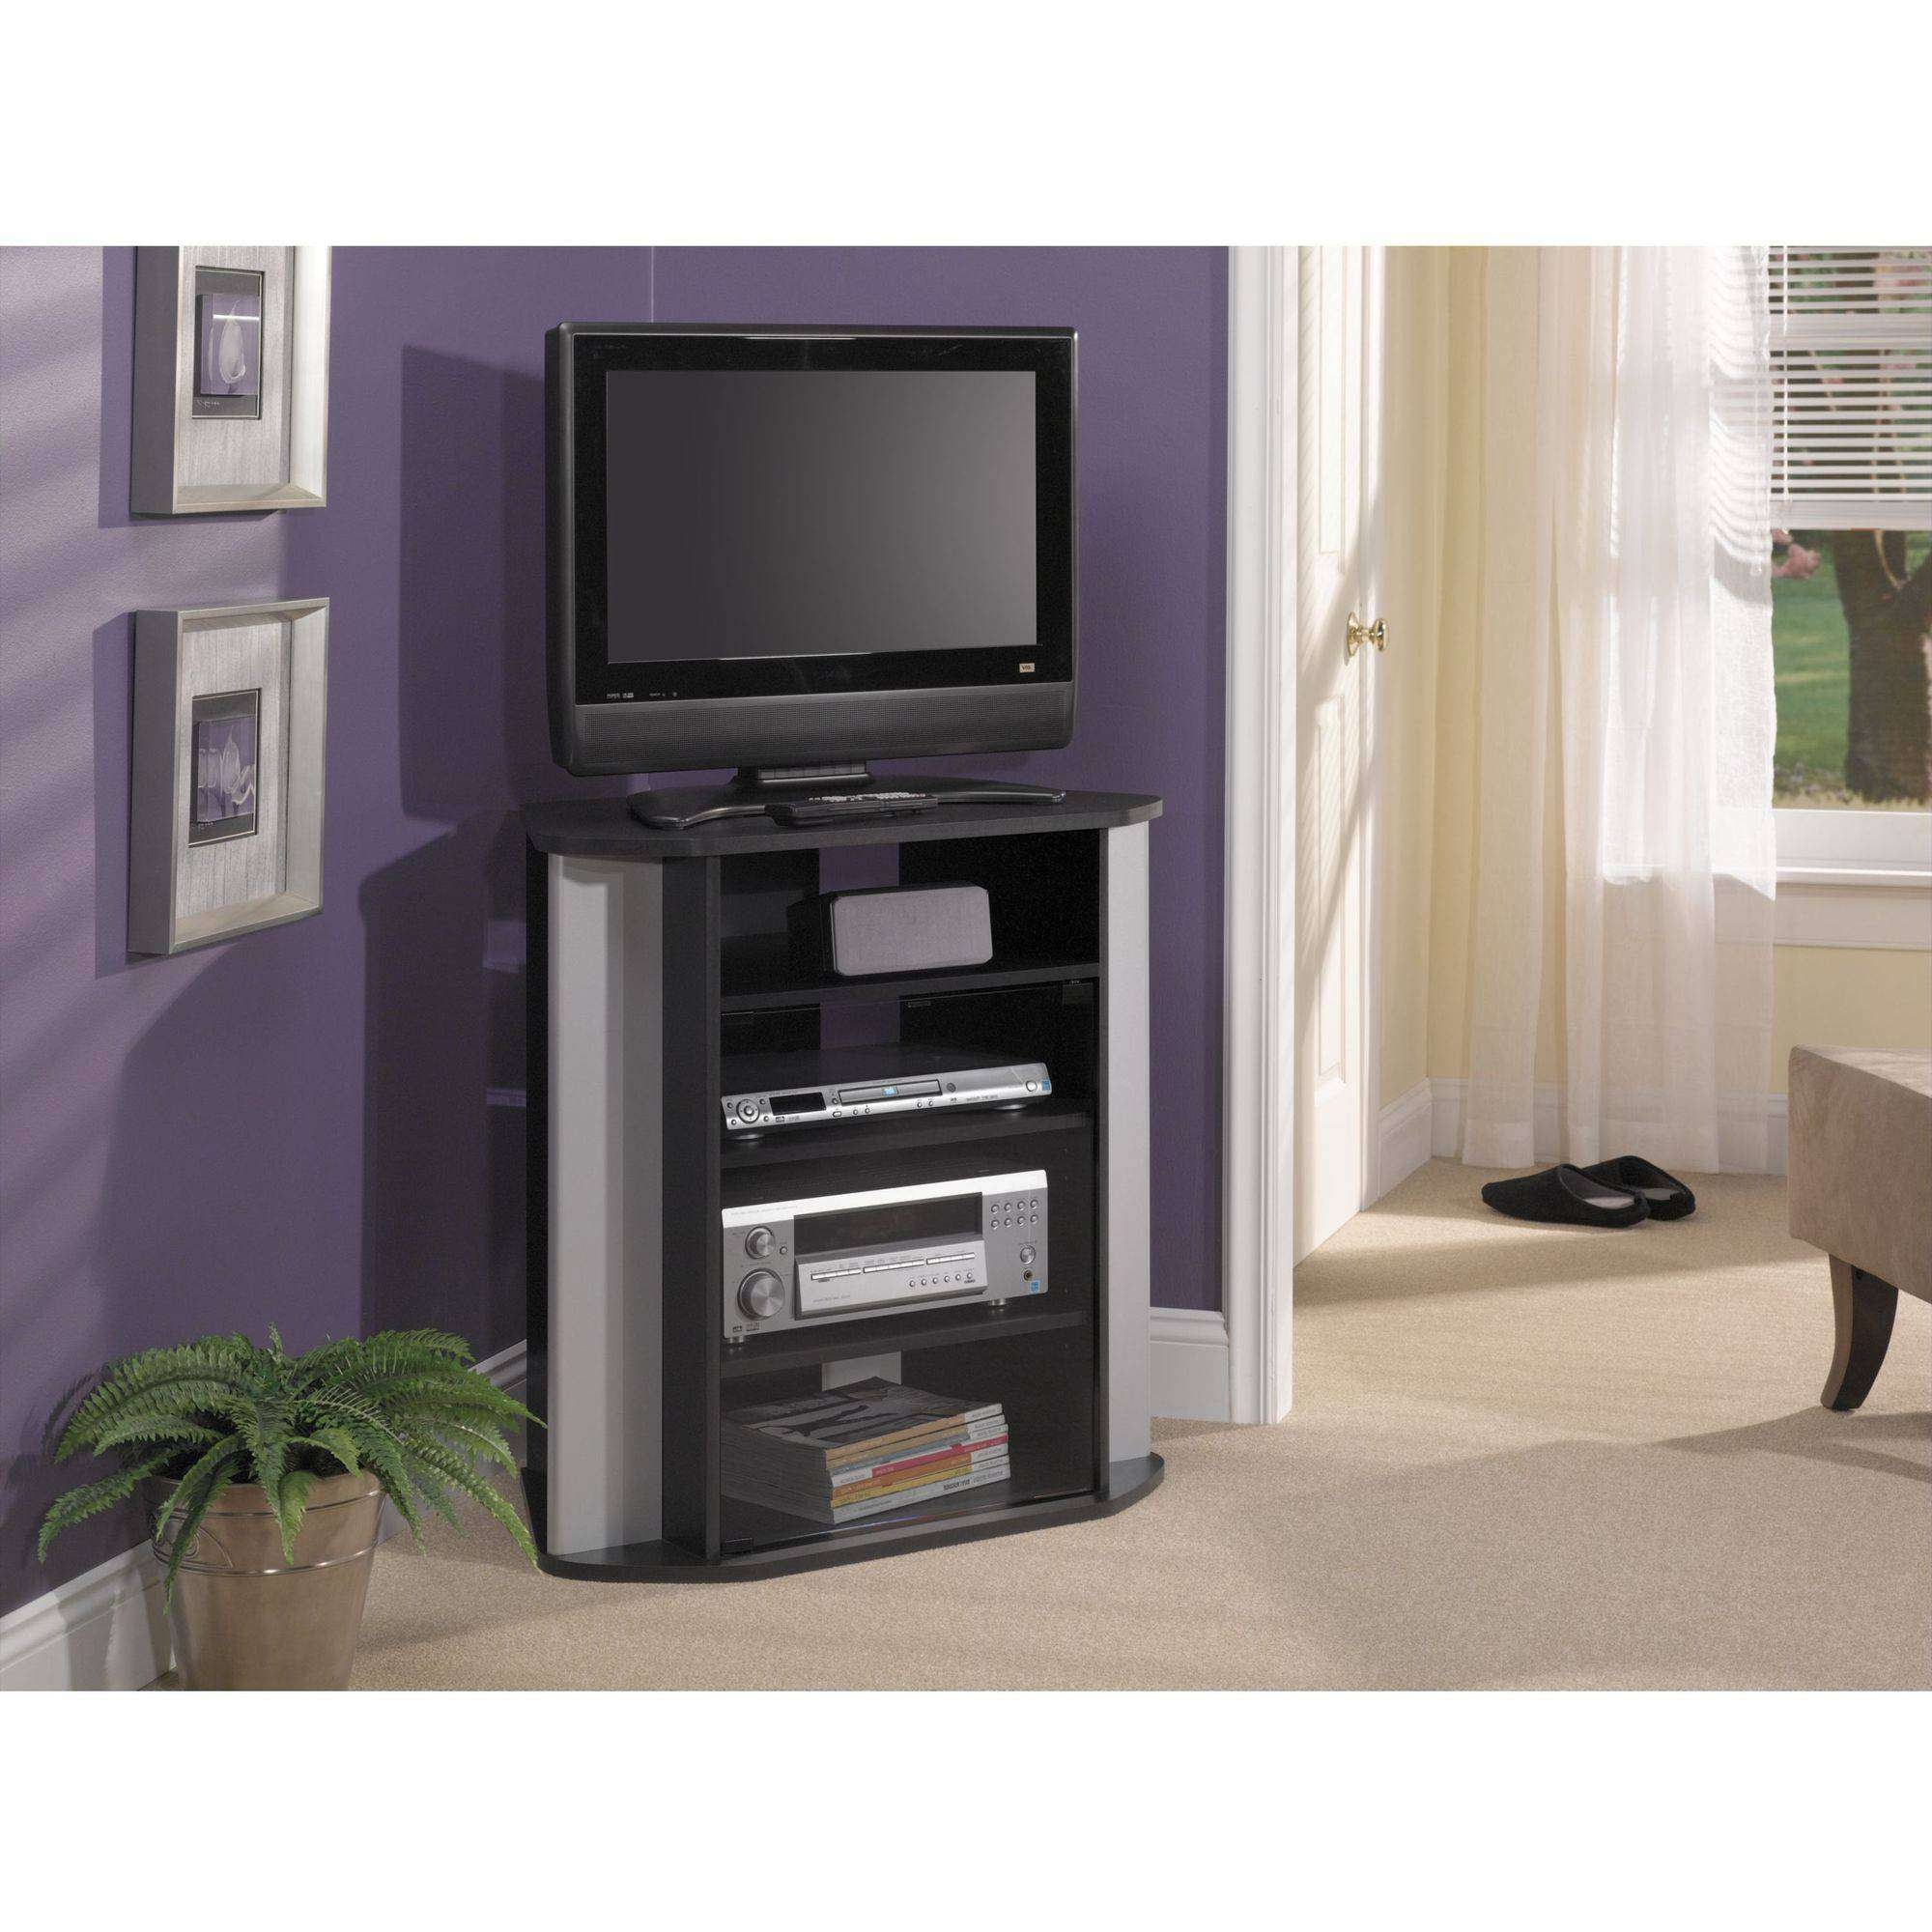 Bush Visions Black Tall Corner Tv Stand, For Tvs Up To 37 Inside Small Corner Tv Stands (View 11 of 20)